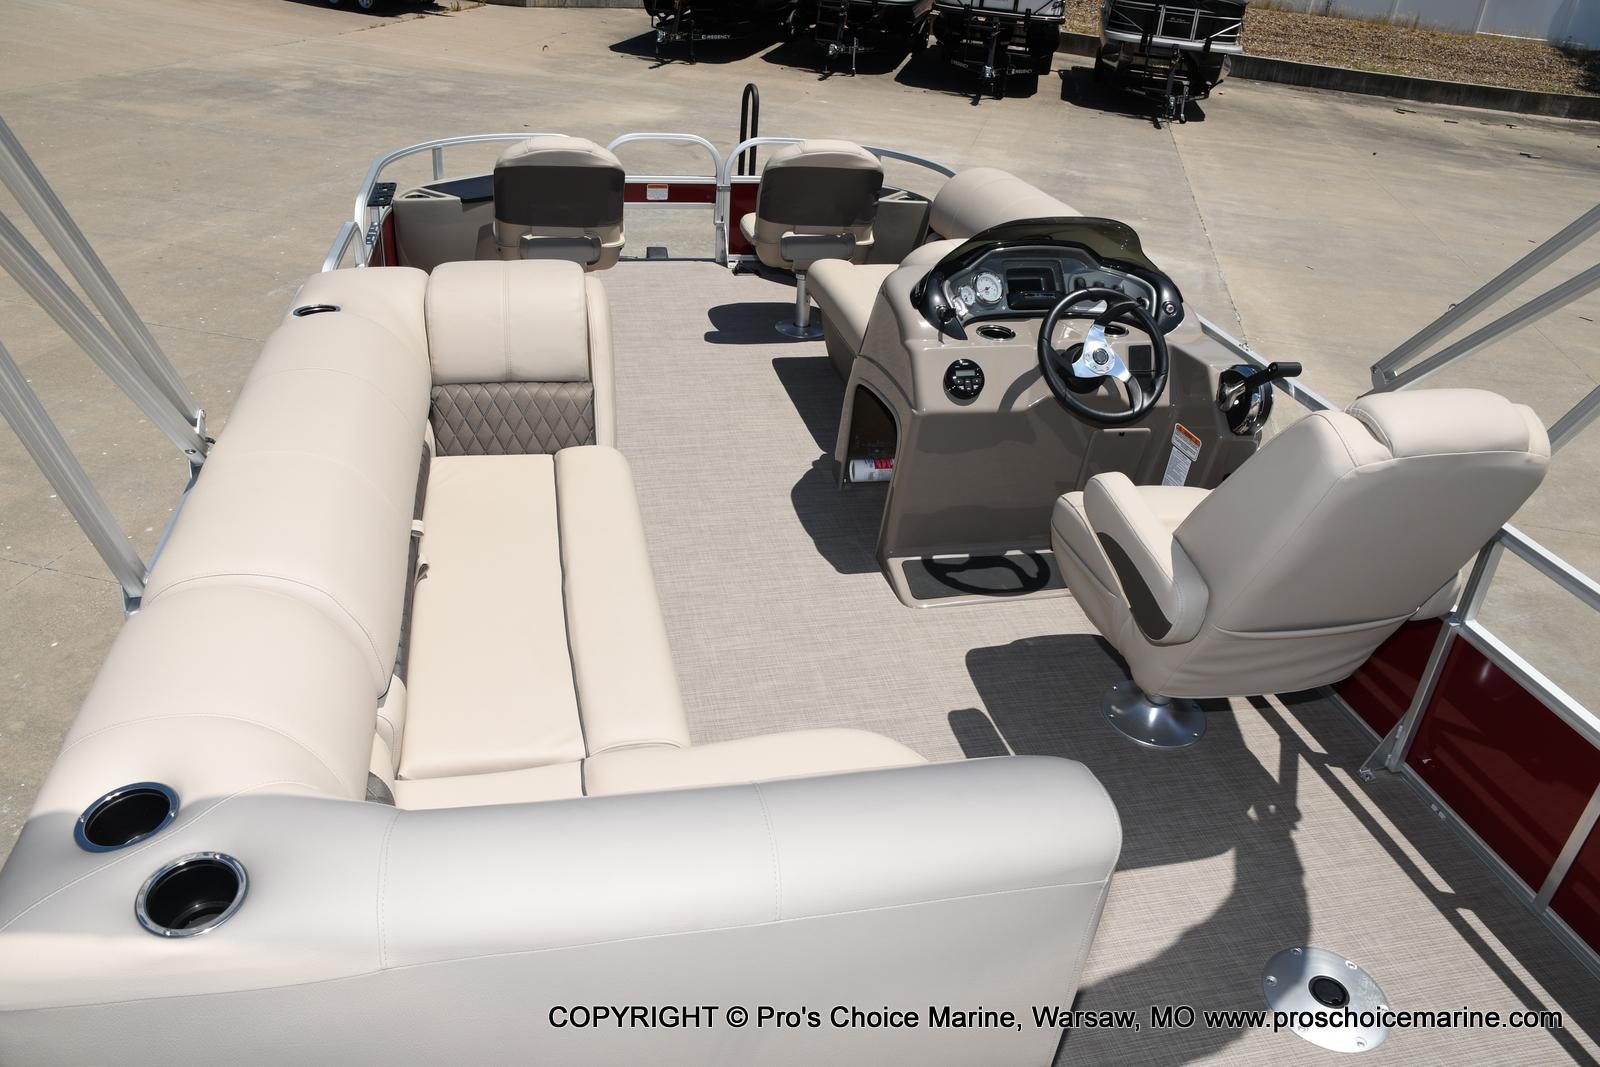 2021 Sun Tracker boat for sale, model of the boat is Fishin' Barge 20 DLX & Image # 7 of 50